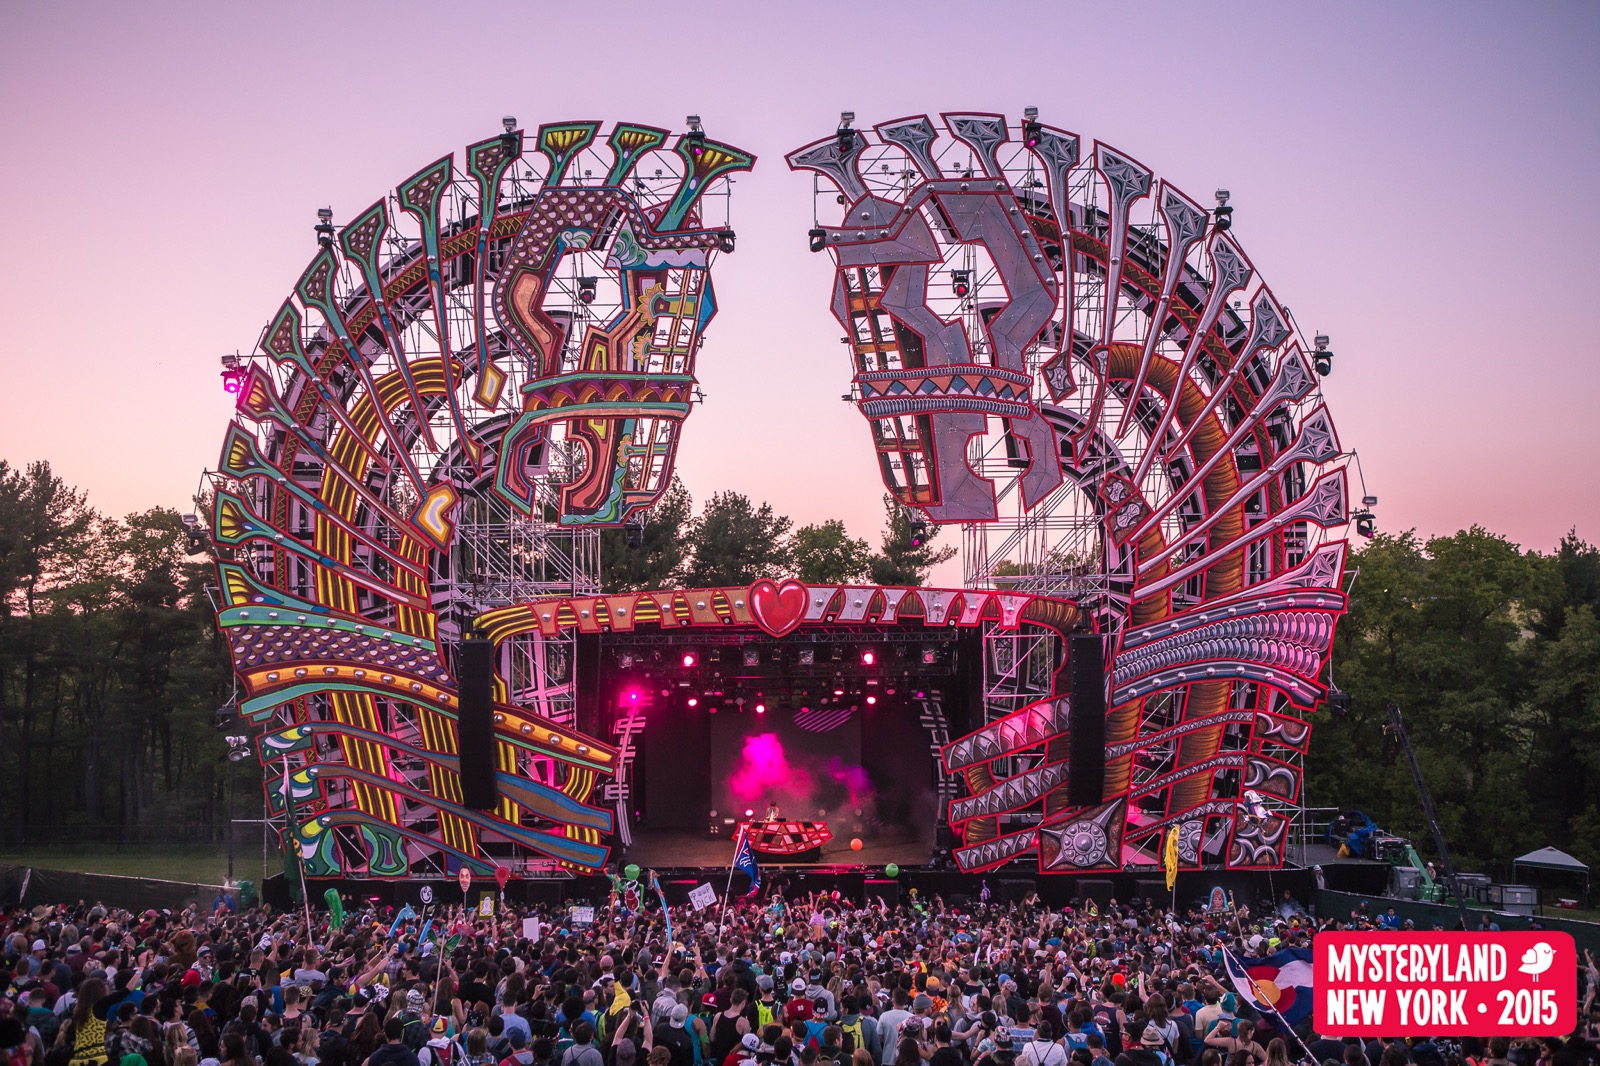 Mysteryland Usa 2015 Danilo Lewis For Mysteryland   20